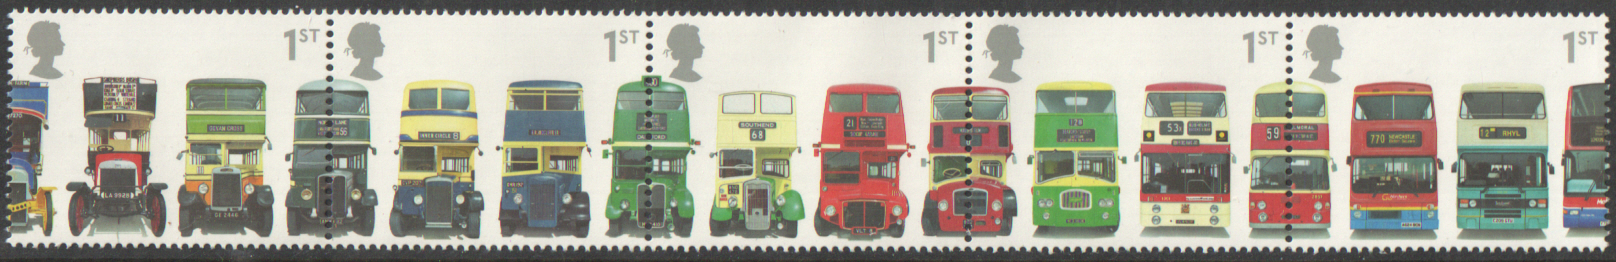 SG2210 / 14 2001 Double Decker Buses unmounted mint set of 5